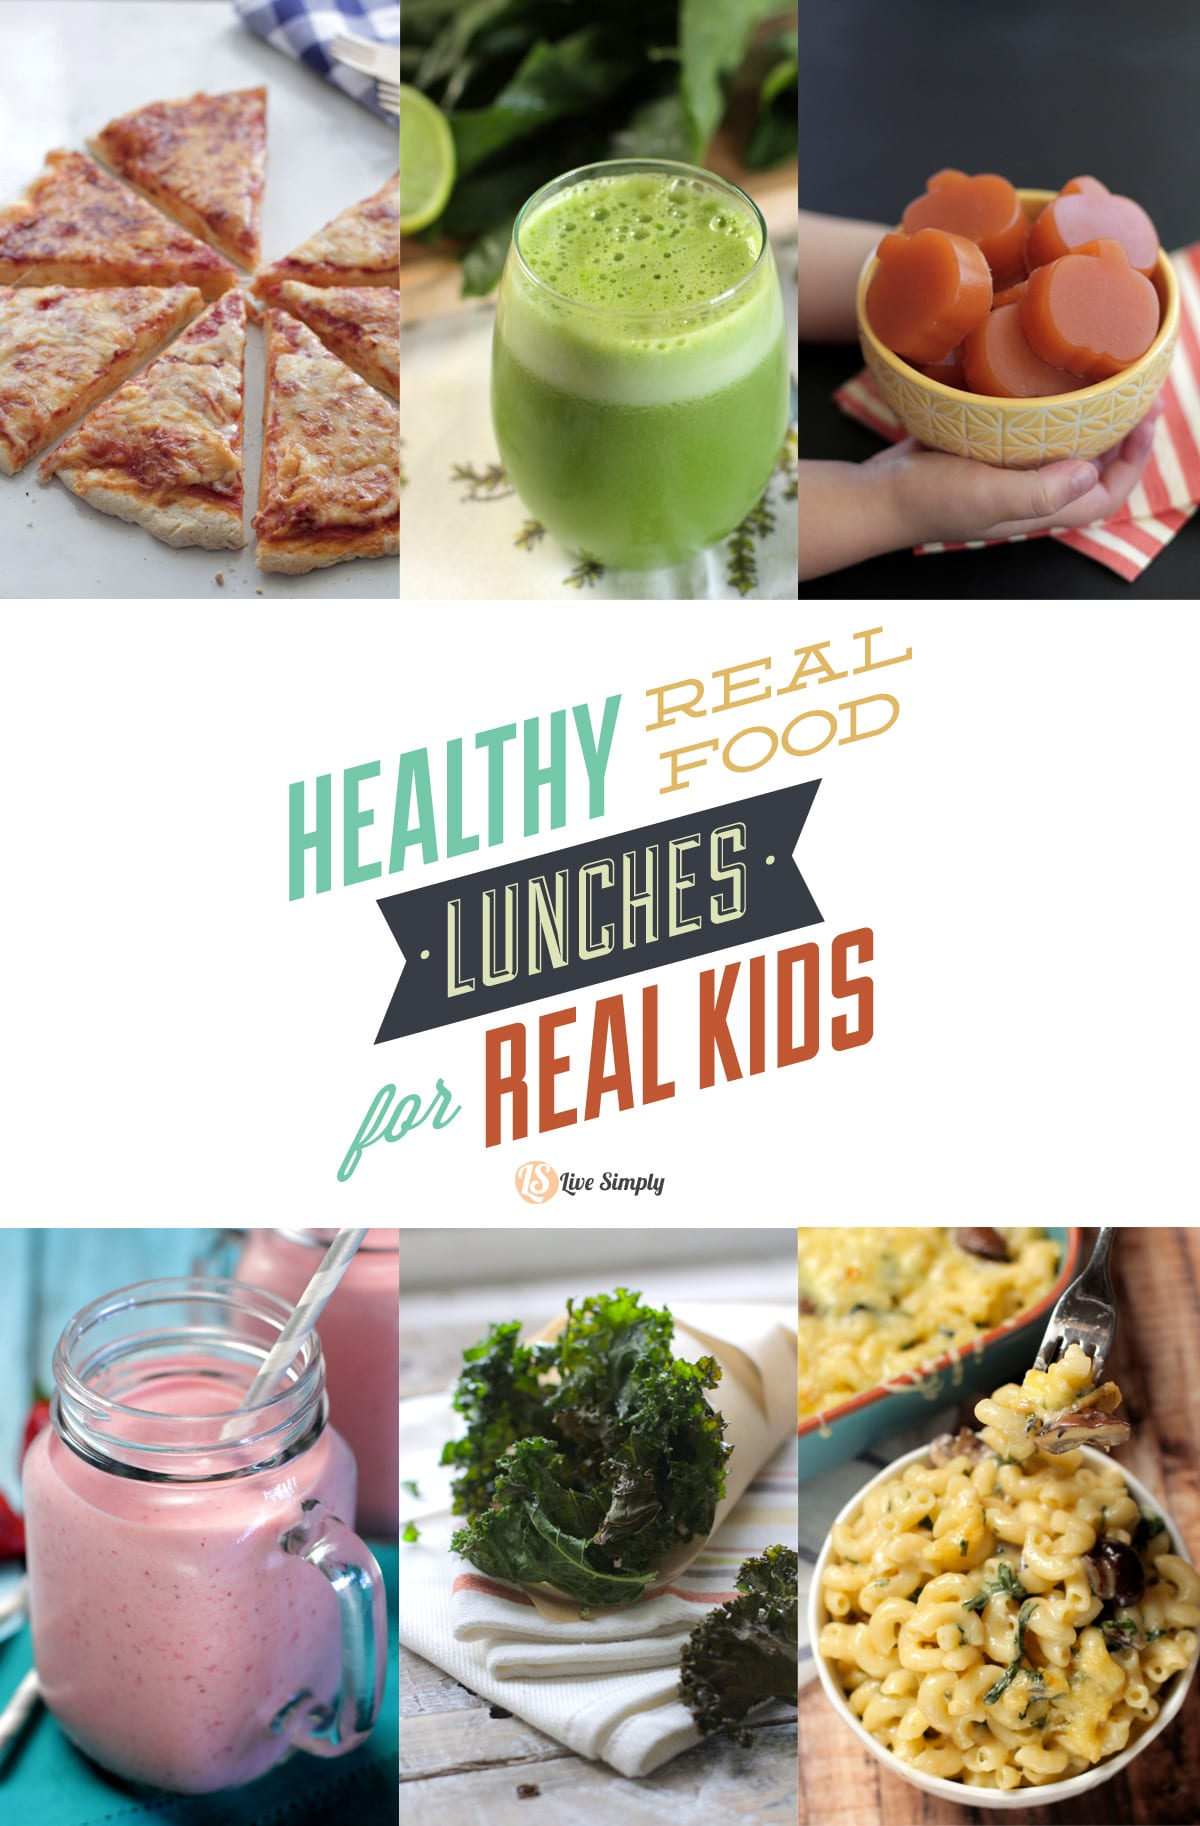 Healthy real food lunches for real kids over 50 recipe ideas live over 60 recipes and ideas for creating healthy real food lunches for kids from kid forumfinder Gallery